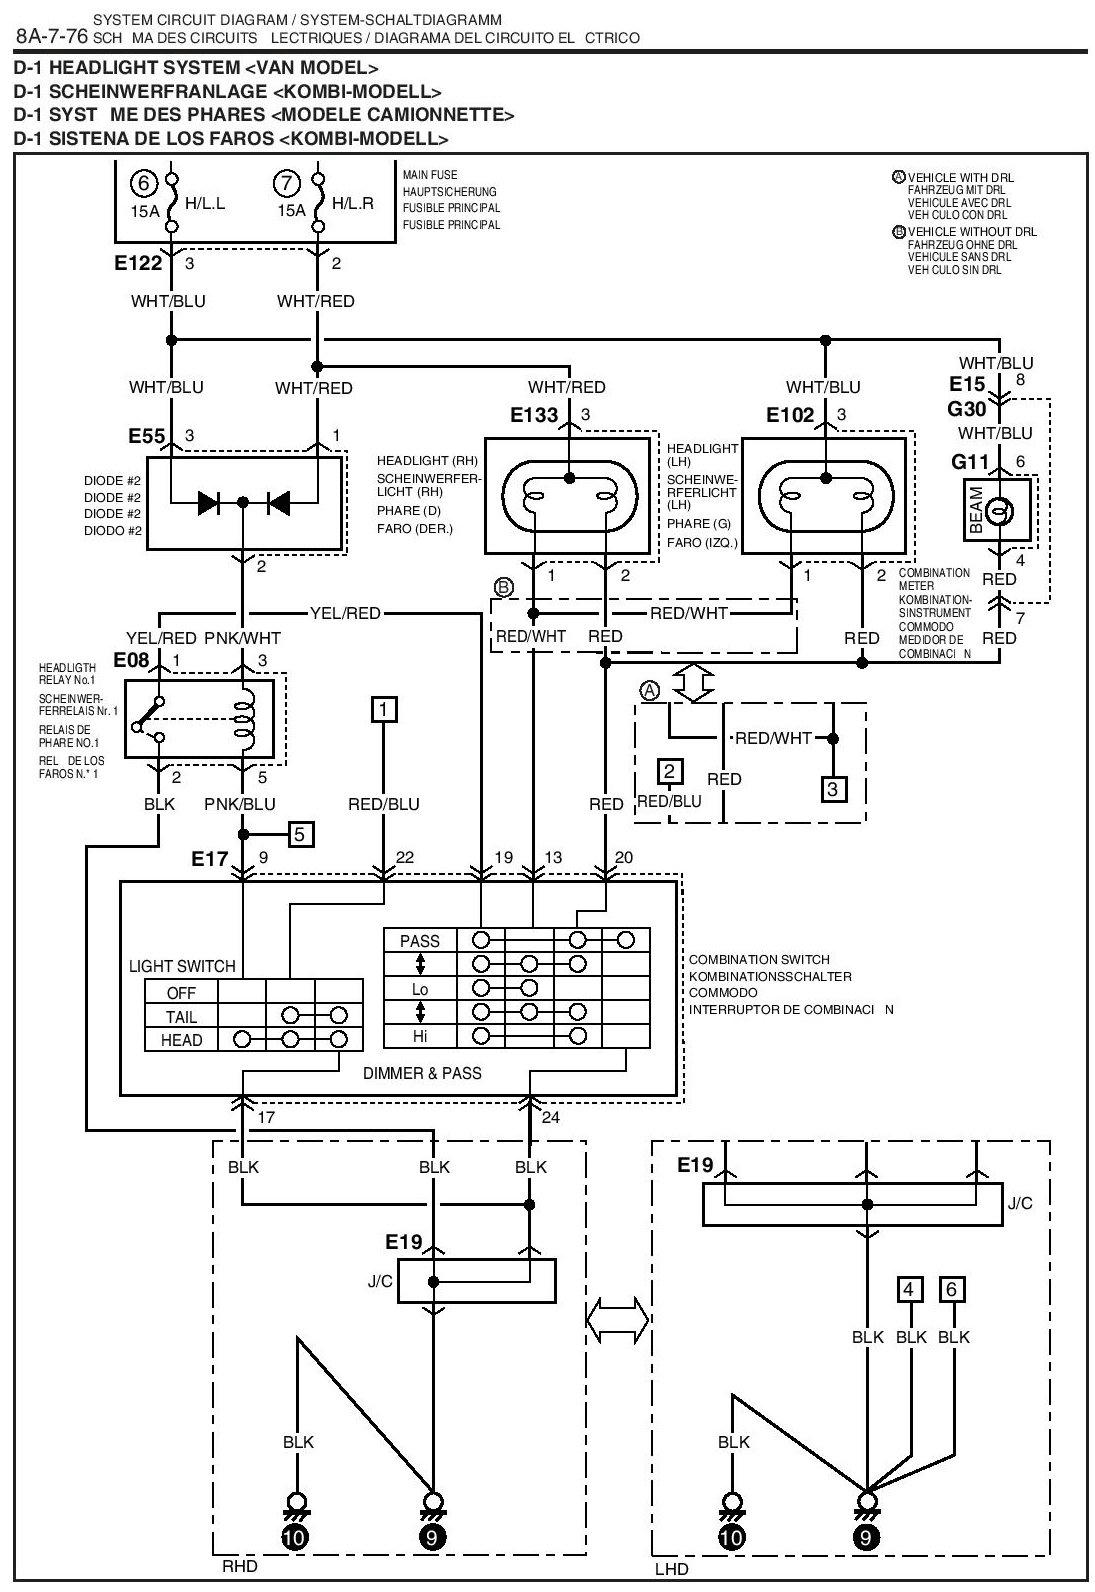 idimatic 28 edgebander wiring diagrams edgebander